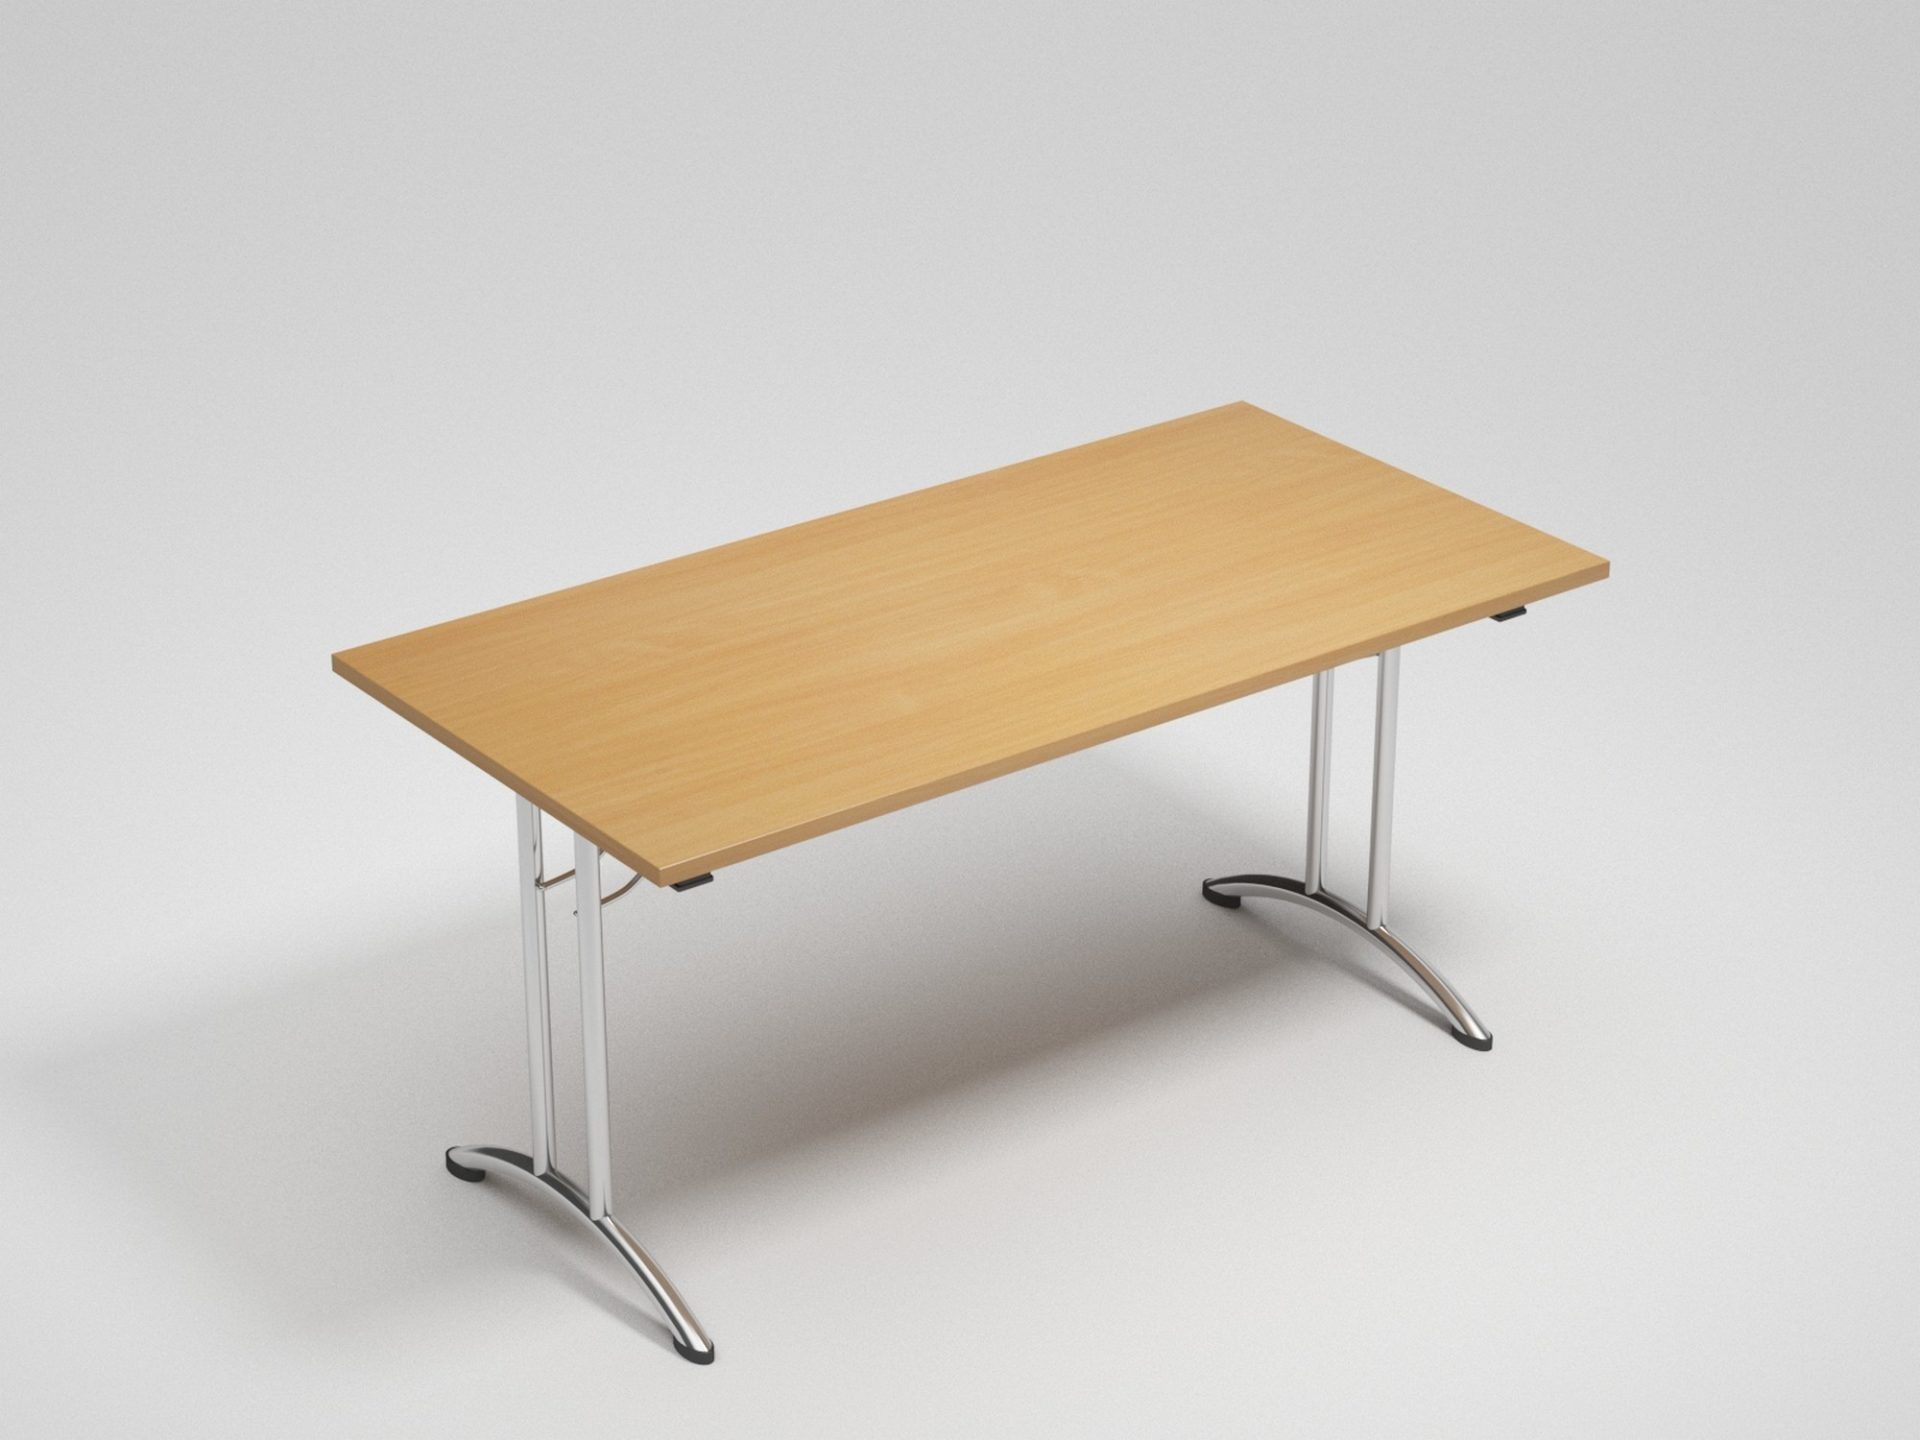 Morph folding tables bracken office interiors for Office folding tables